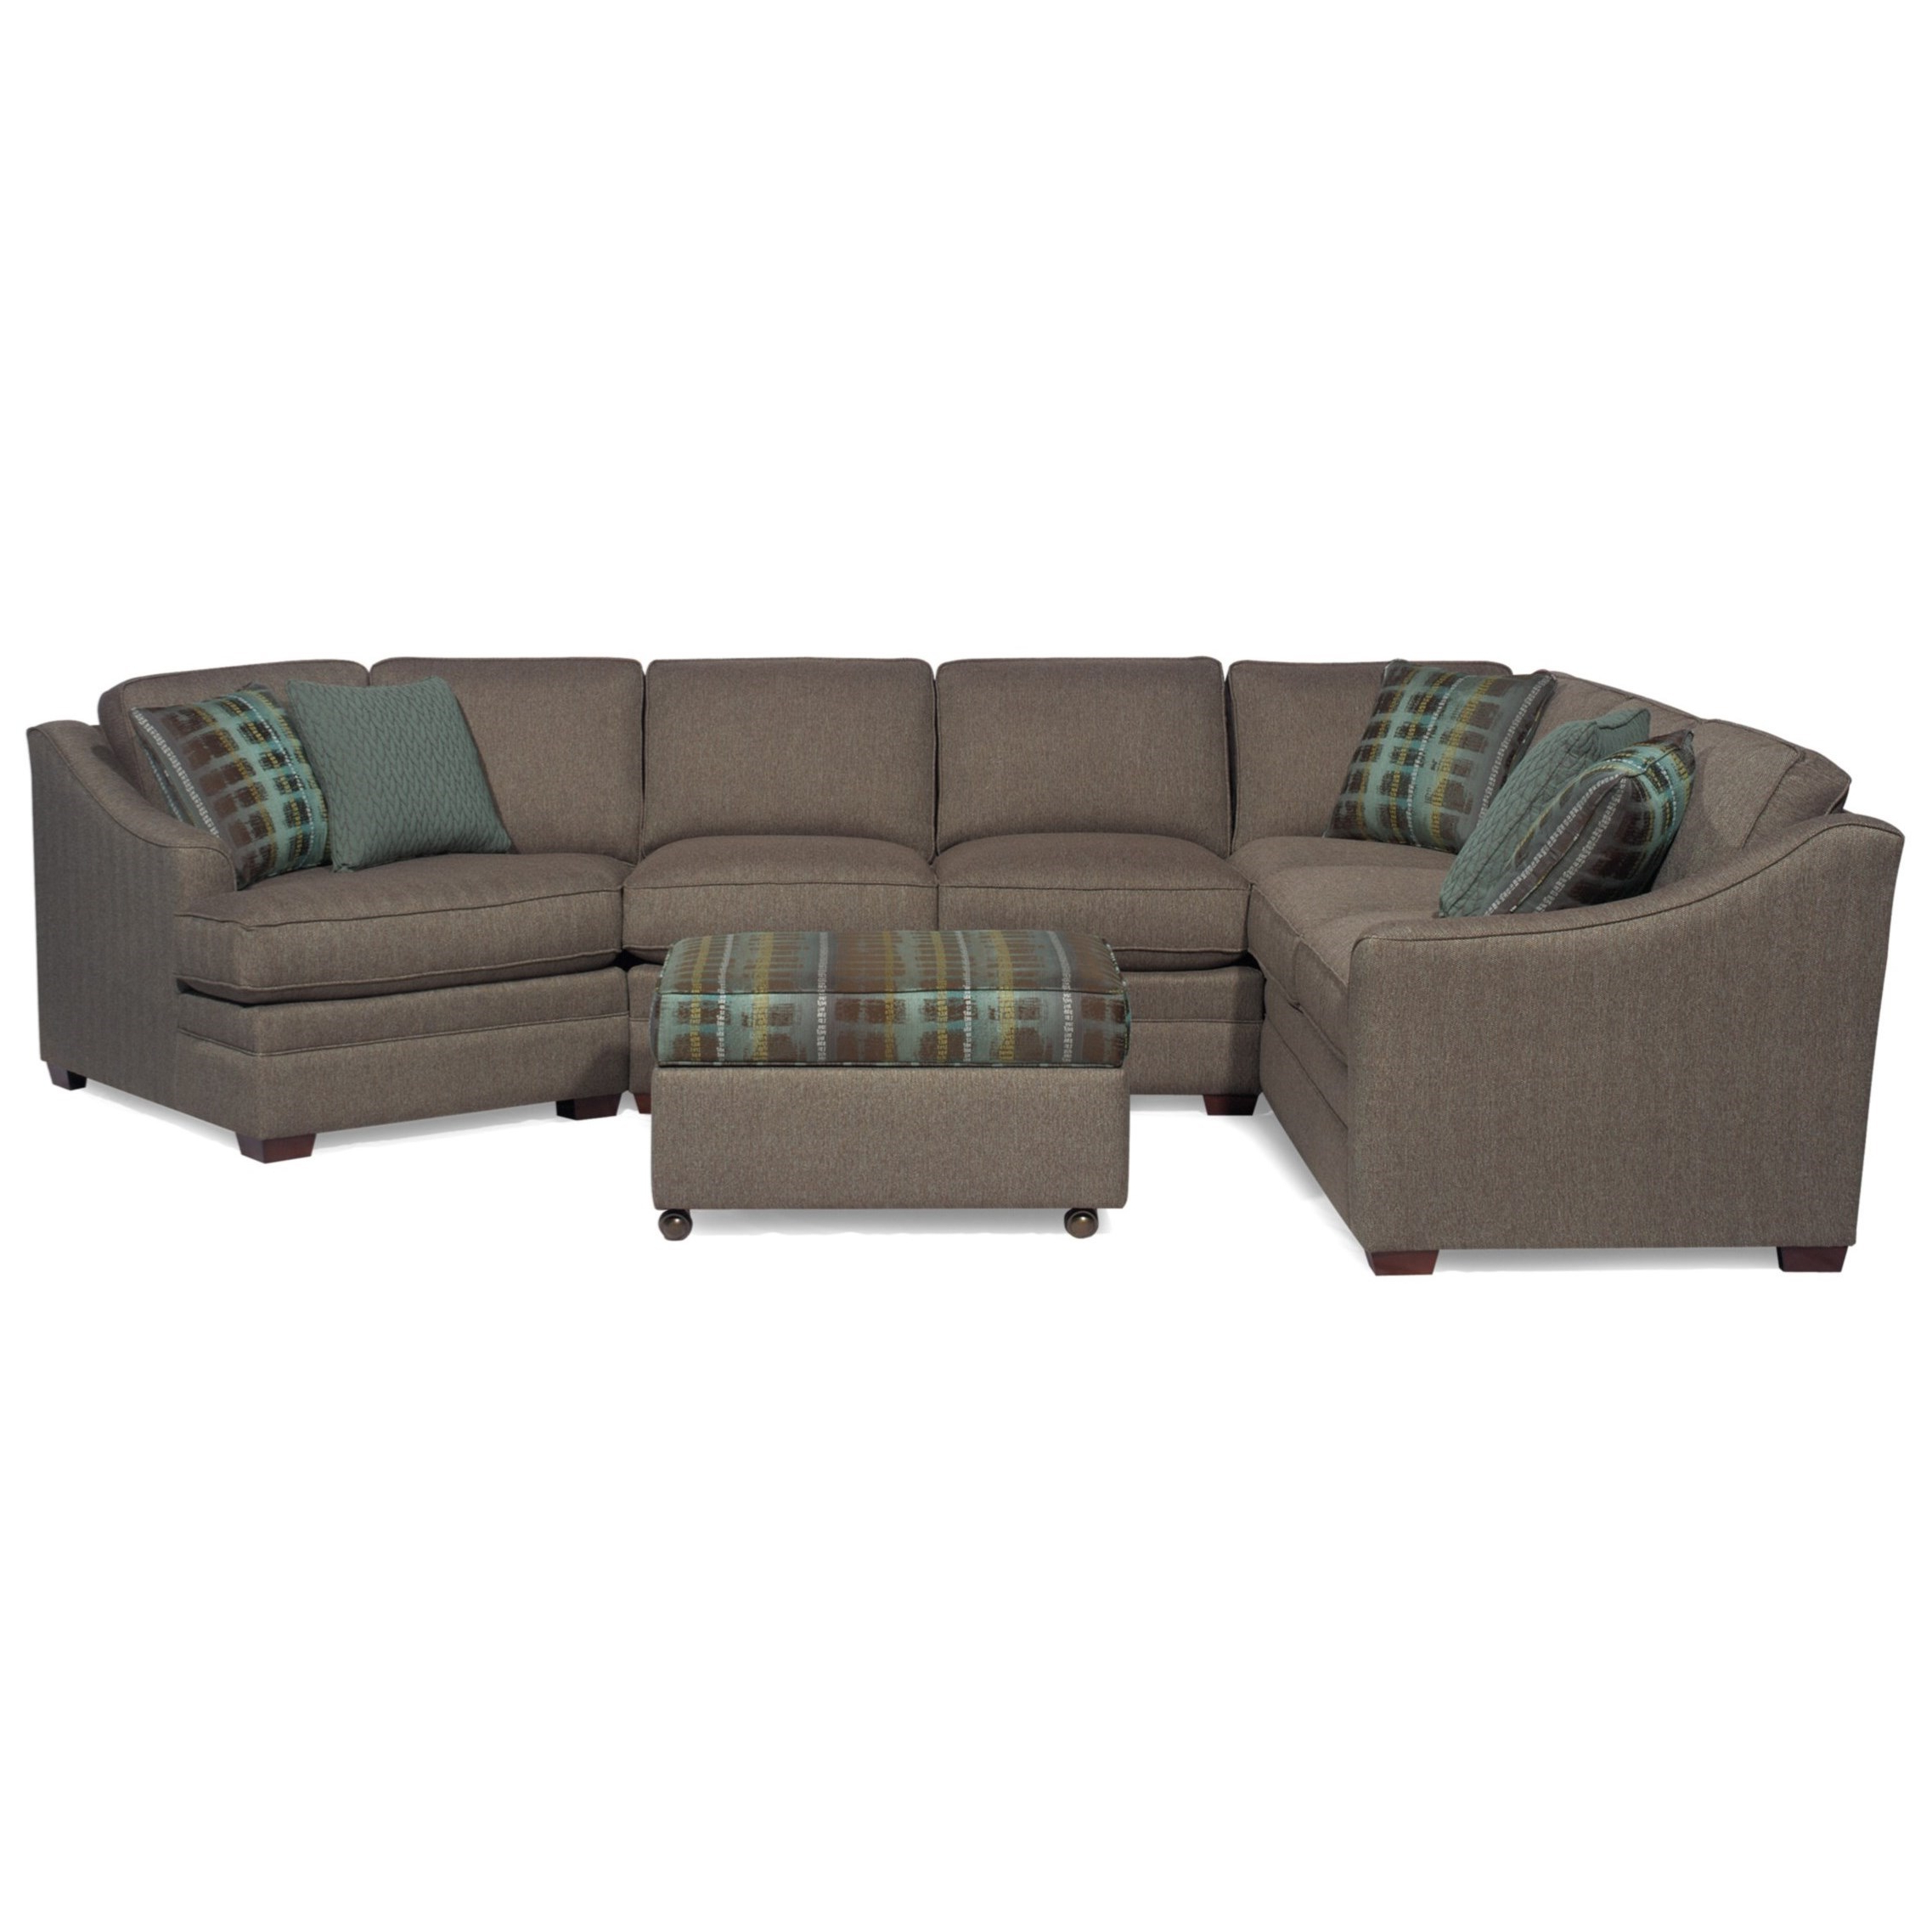 Craftmaster F9 Design Options <B>Customizable</b> 3 Piece Sectional With Regard To Preferred Adeline 3 Piece Sectionals (View 10 of 20)